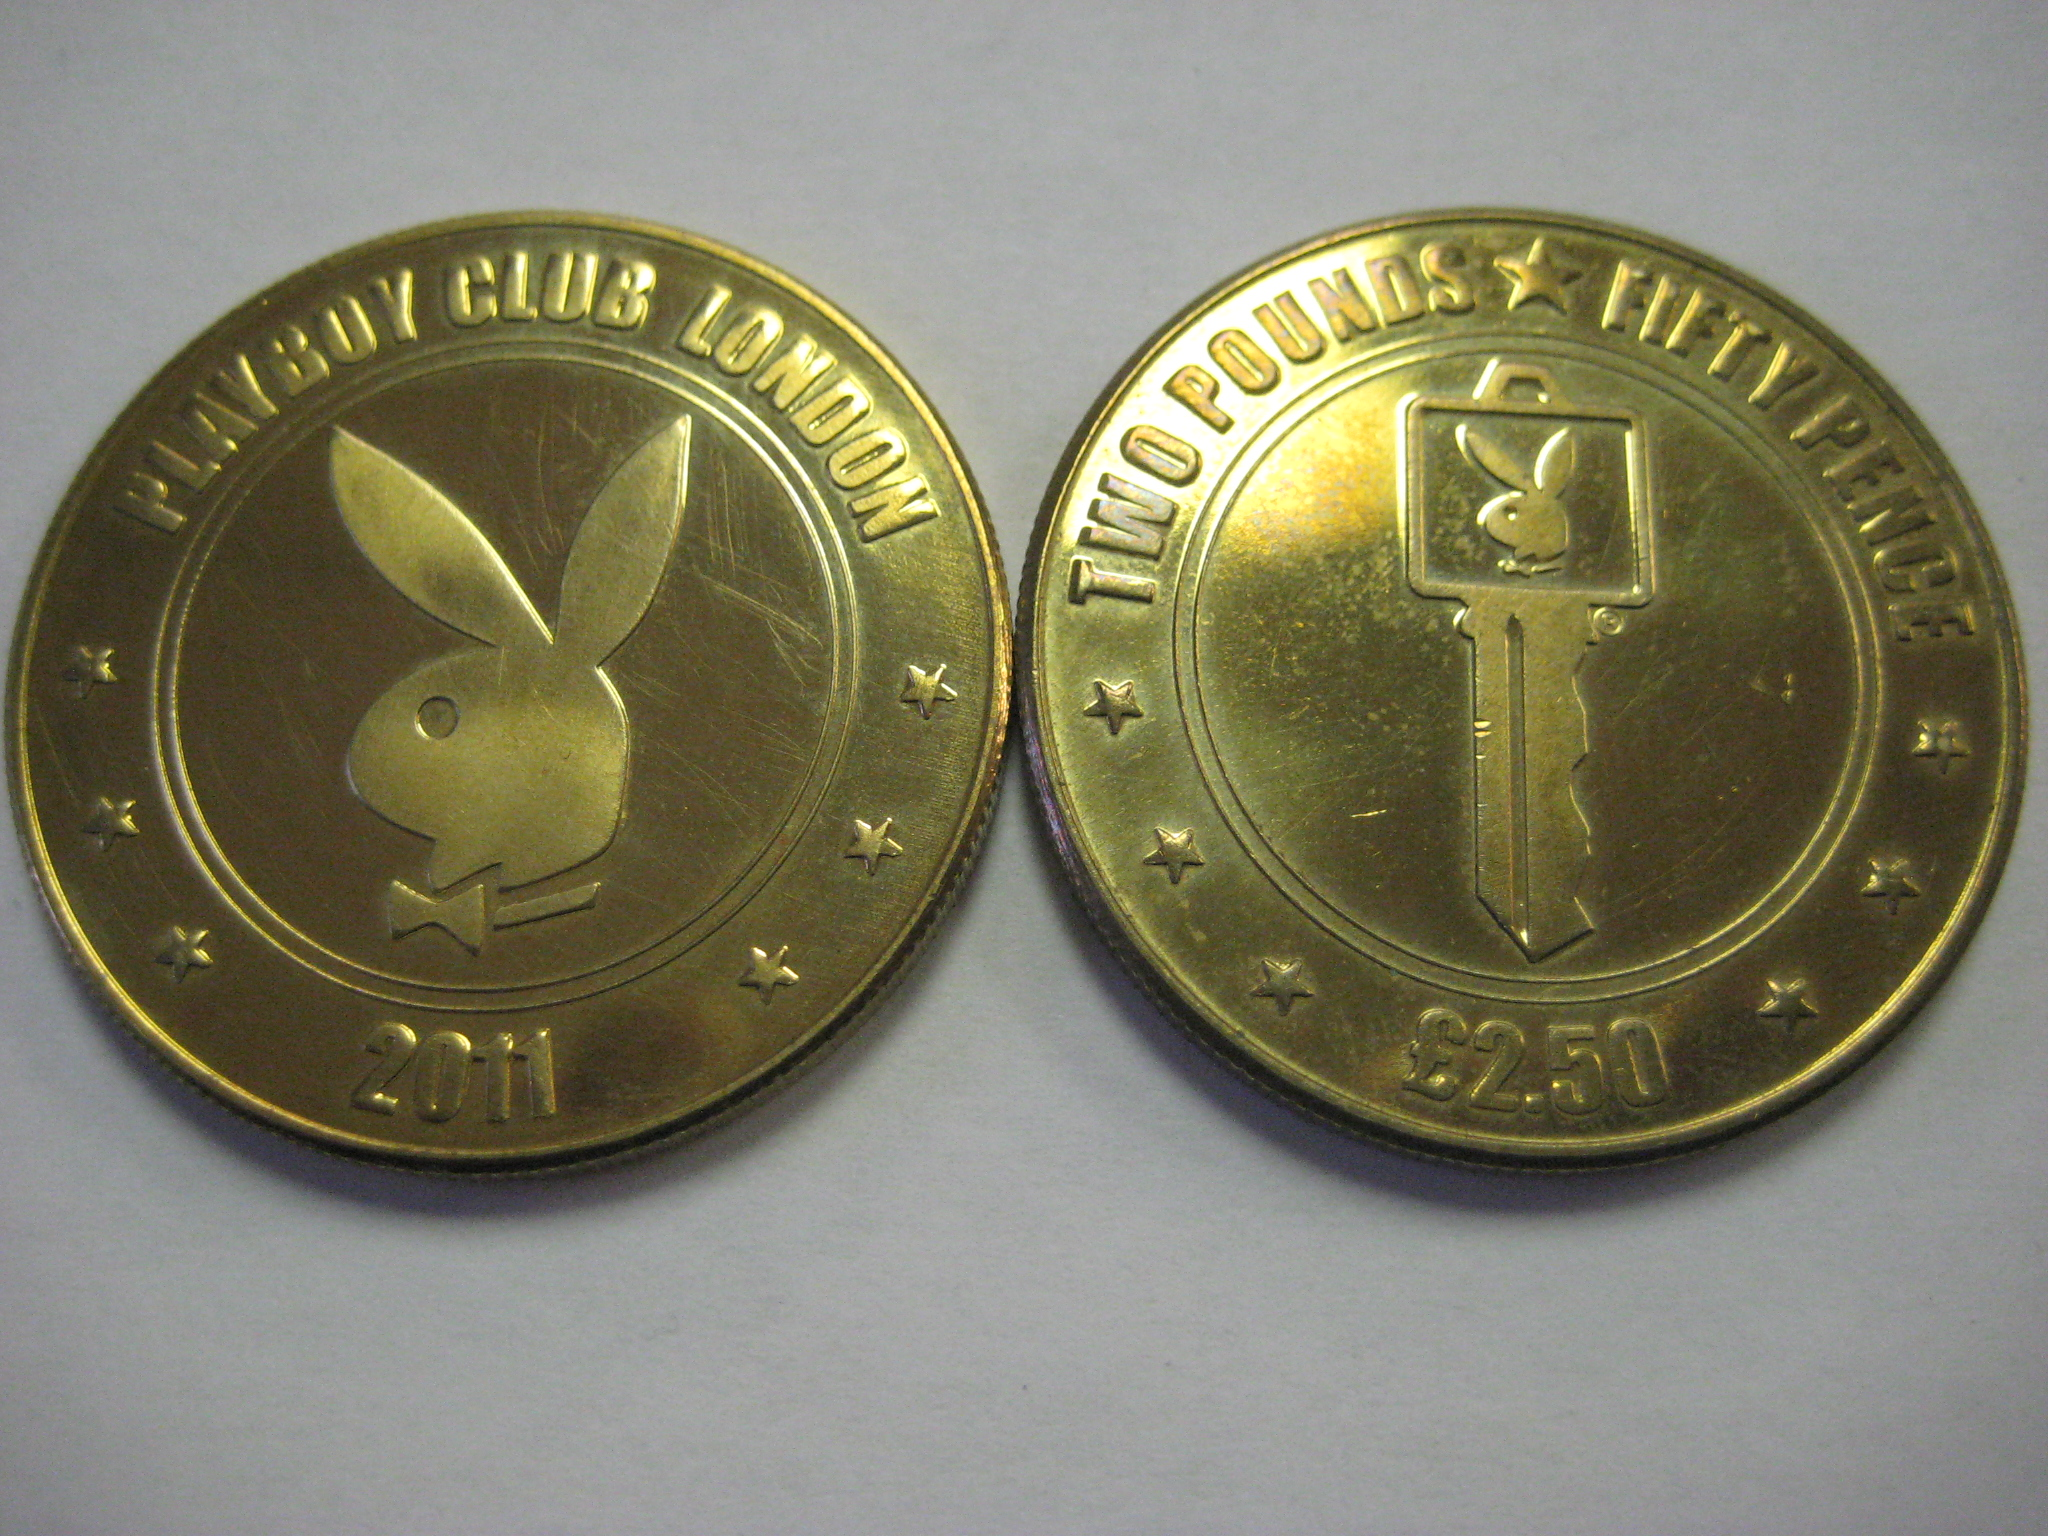 2011 Playboy Club London 2.50 Pound